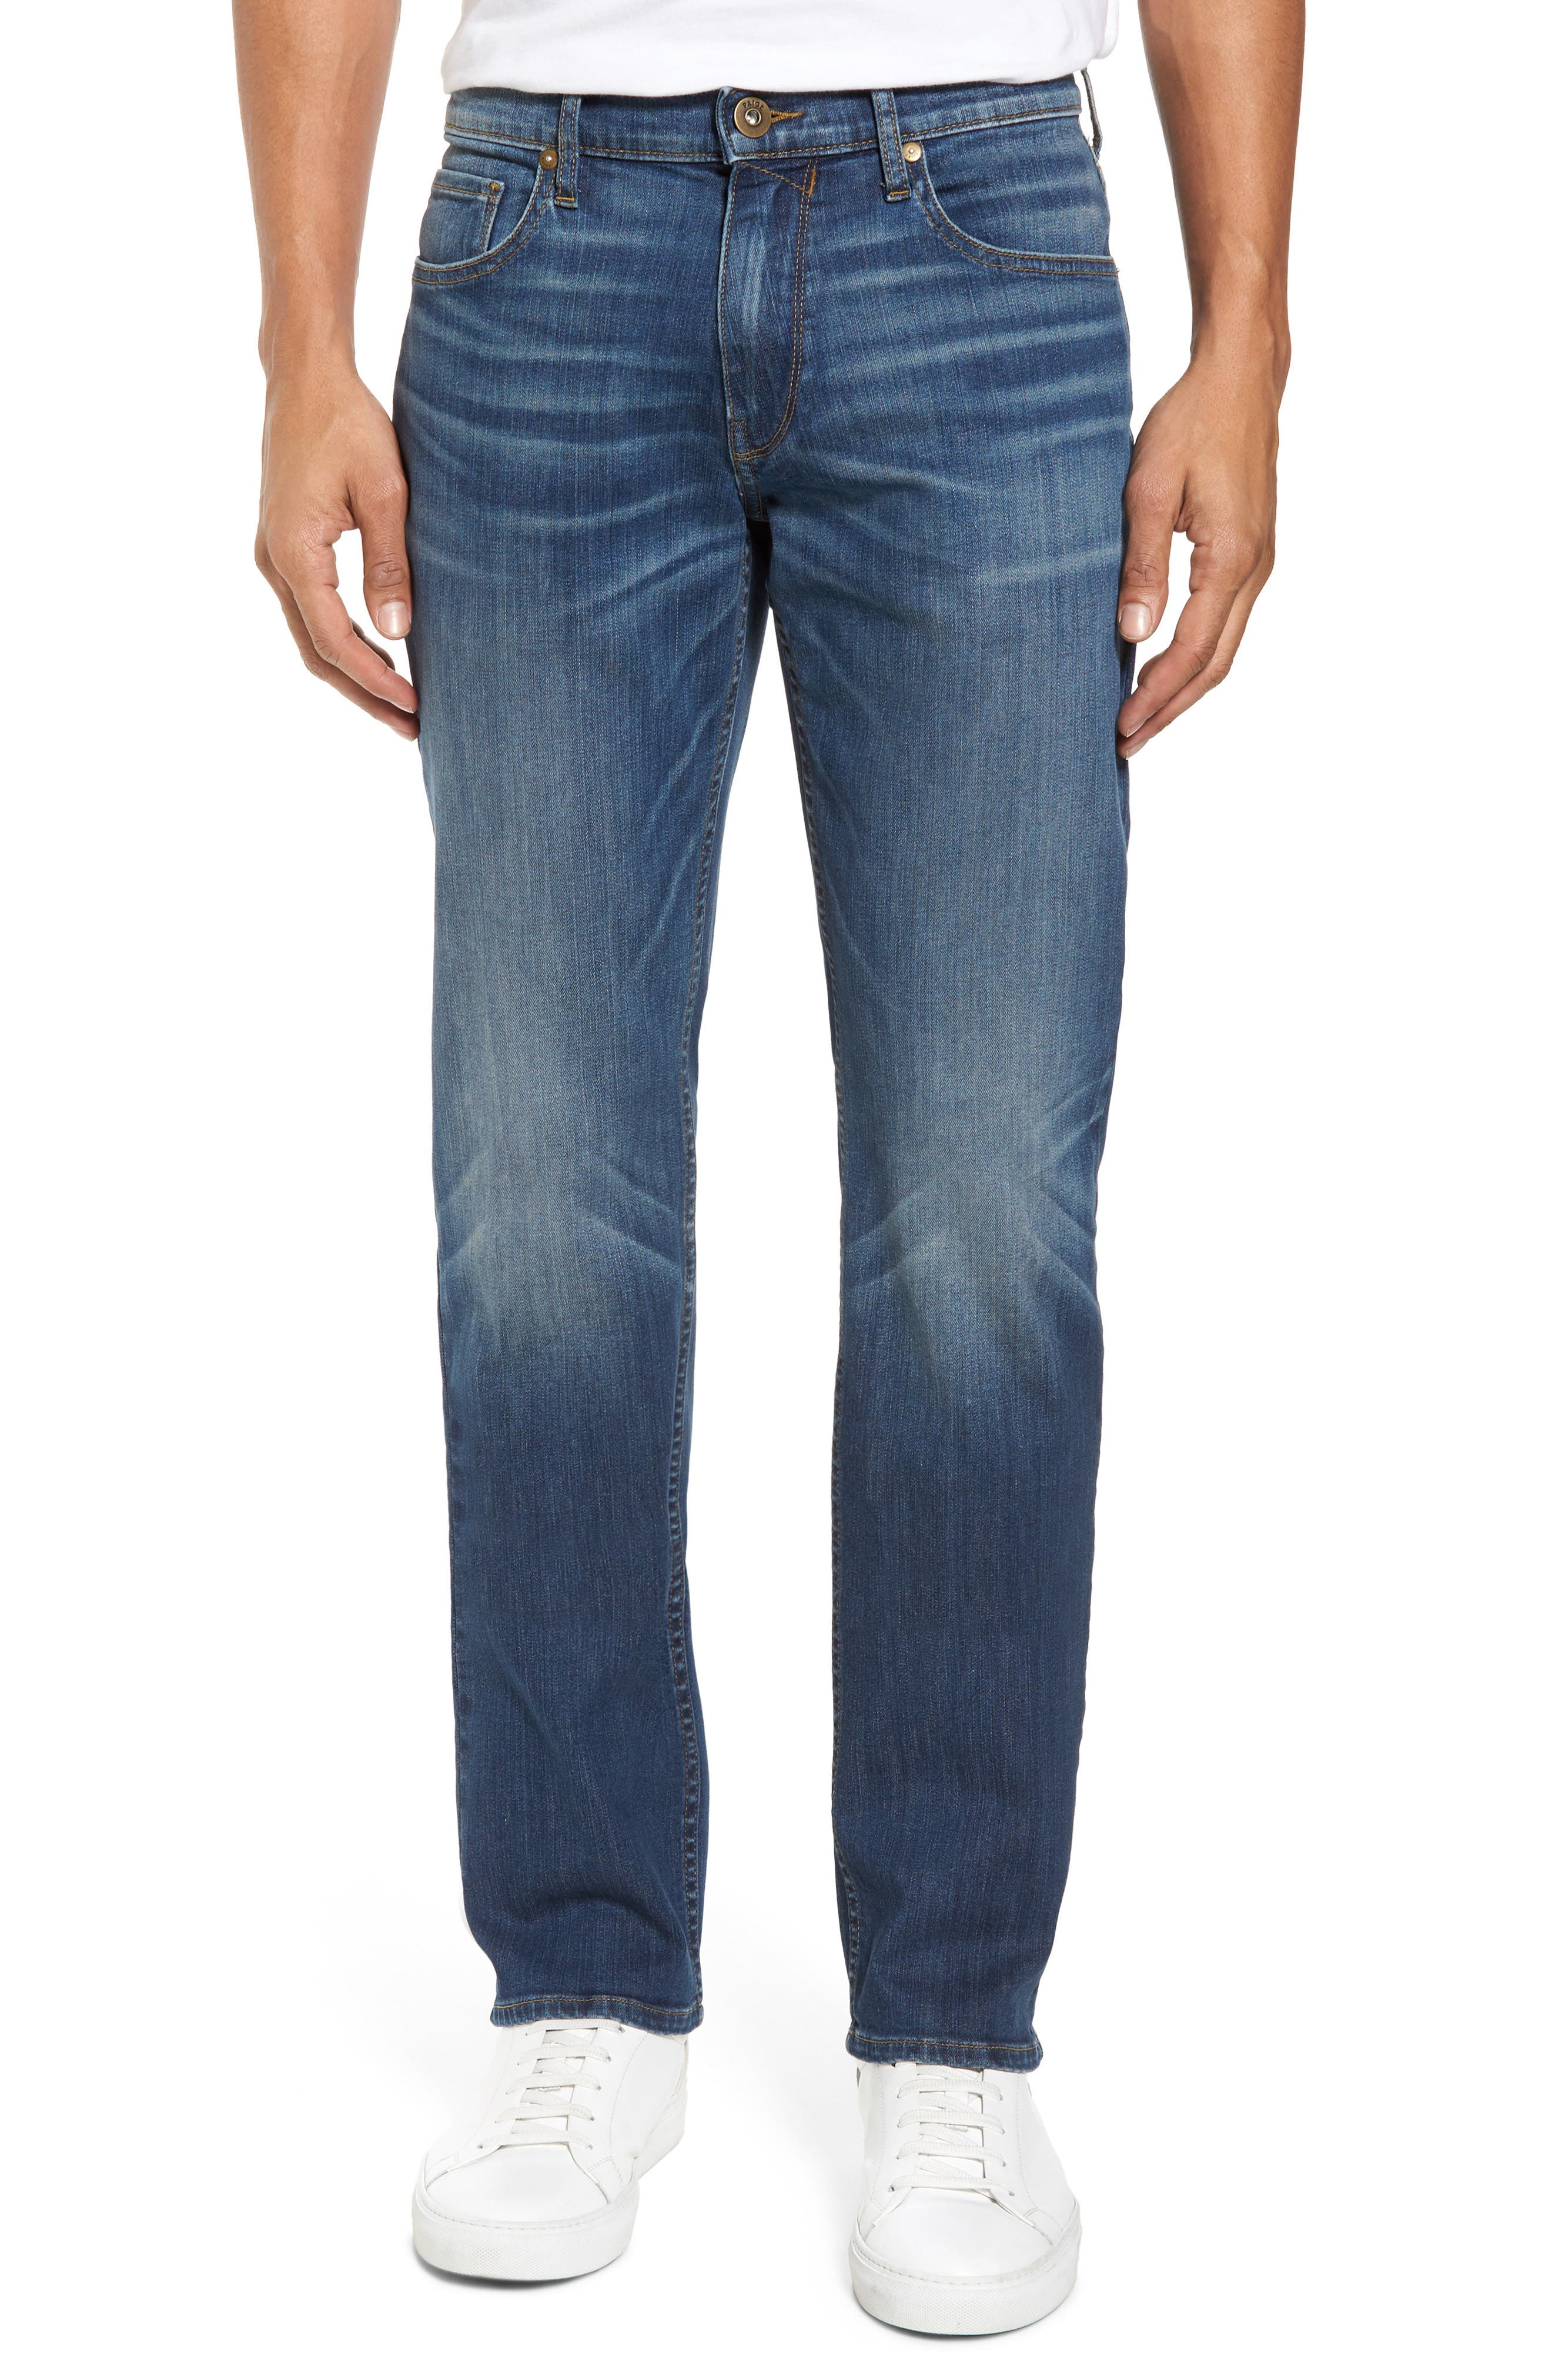 Legacy - Normandie Straight Leg Jeans,                         Main,                         color, Harlan